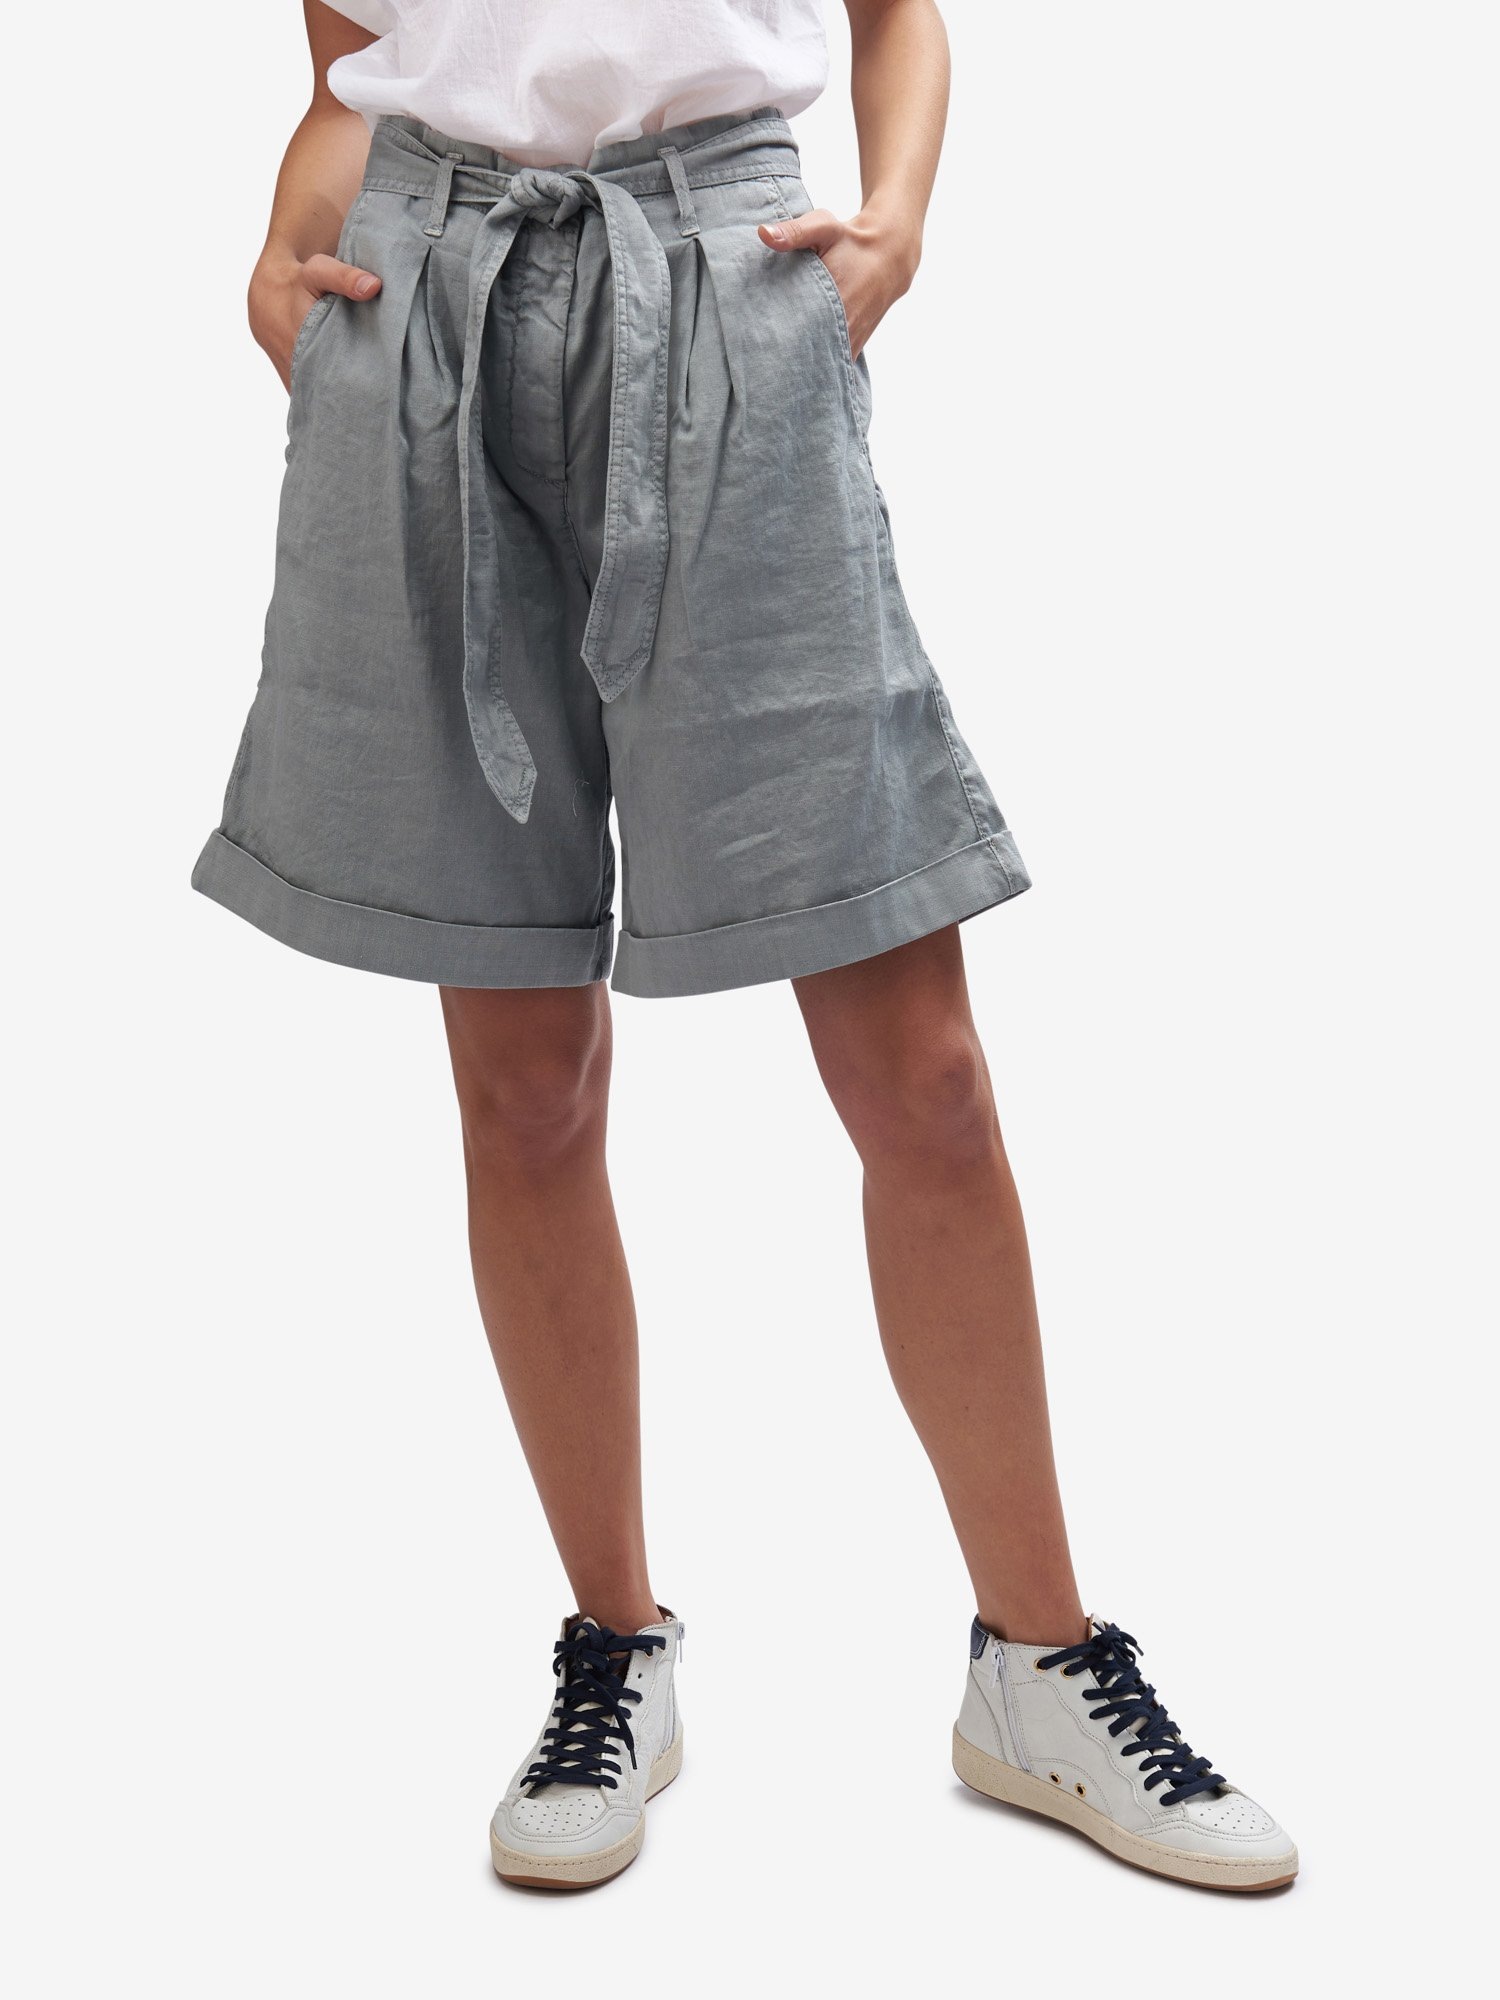 Blauer - SHORTS WITH BELT - Grey Pigeon - Blauer